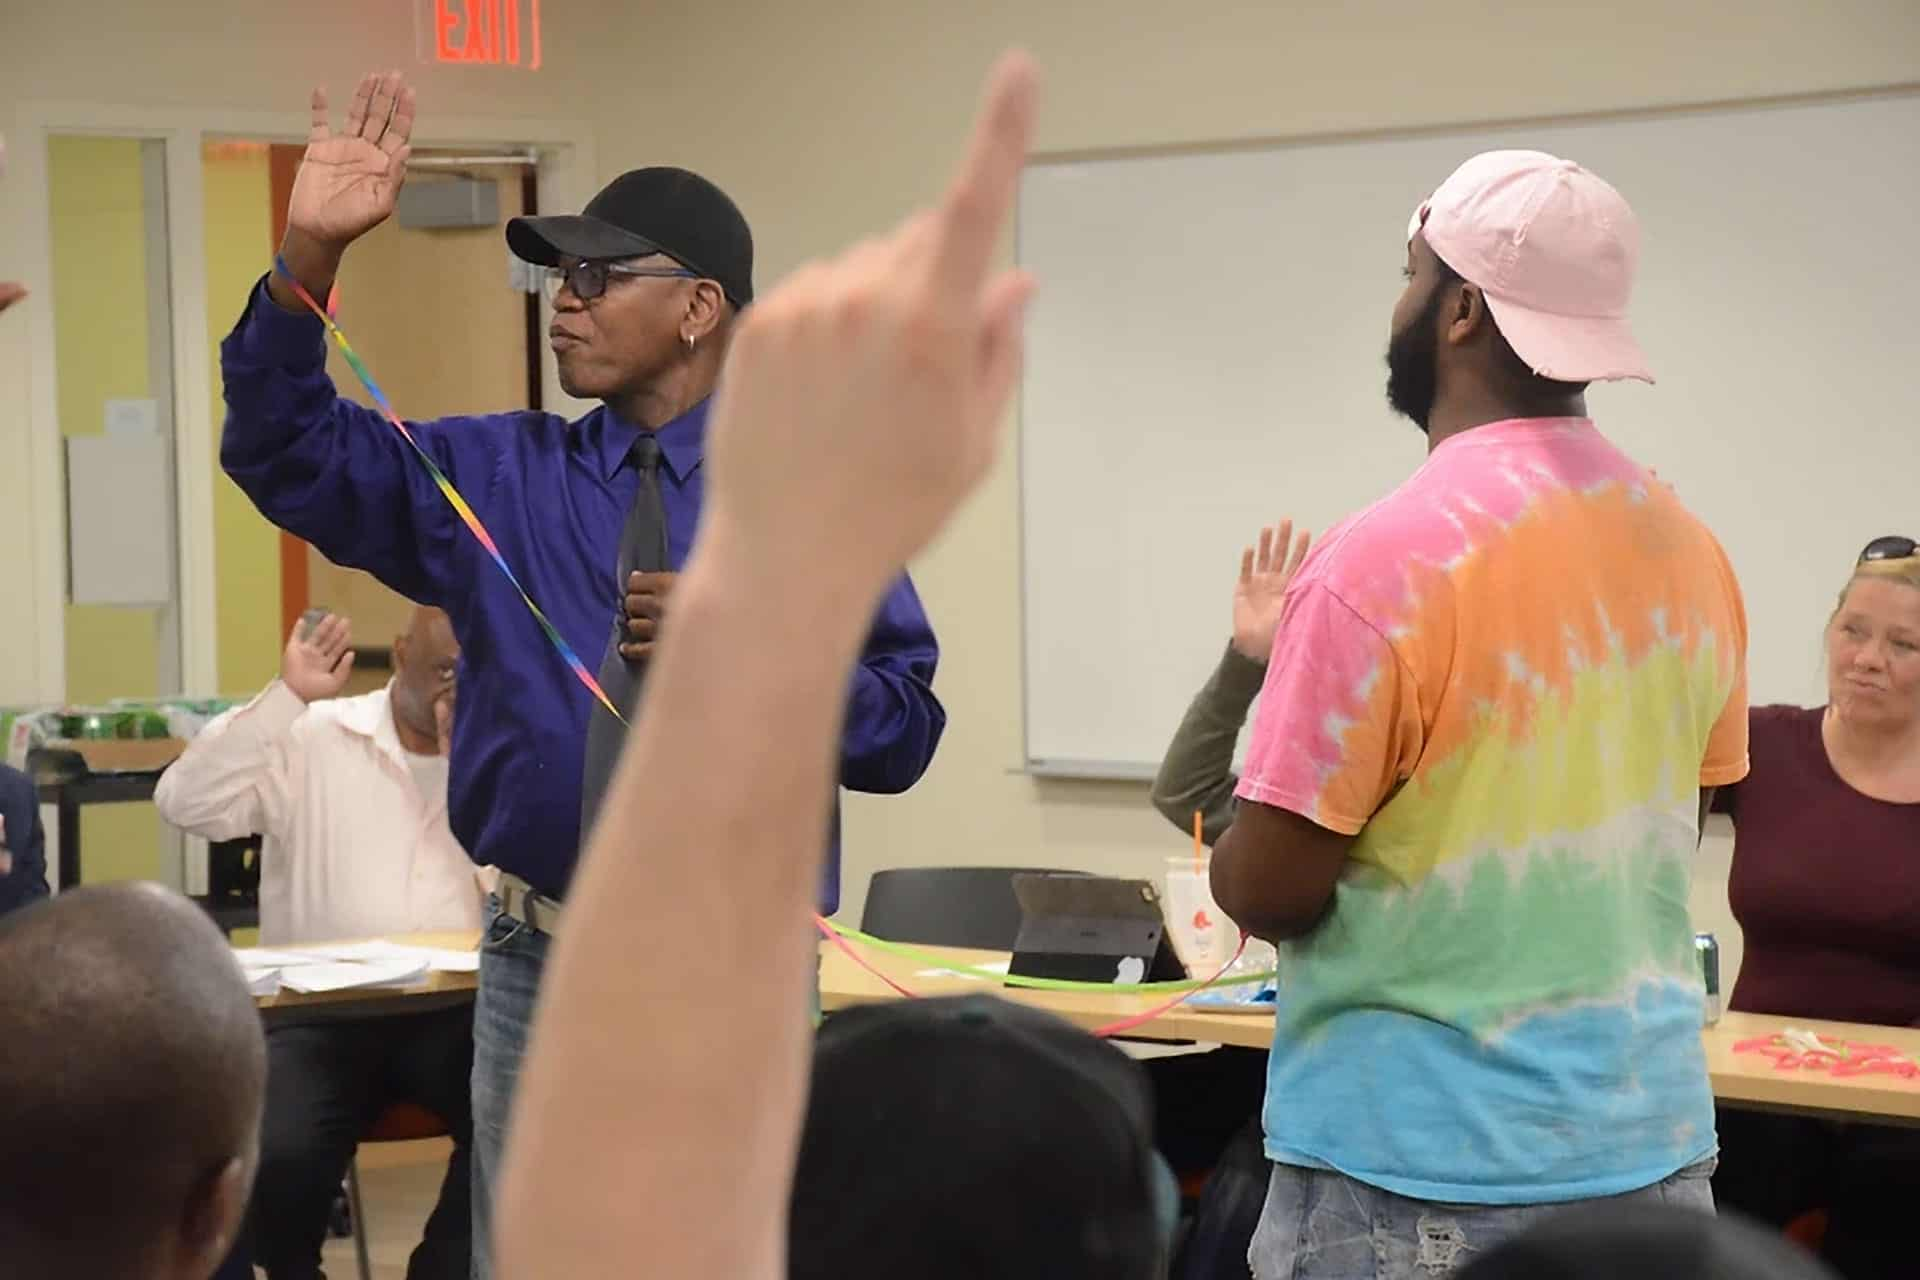 Inside the Reentry Campus Program. The mission of the Reentry Campus Program is to provide currently and formerly incarcerated individuals with an affordable pathway to accredited post secondary education and certification programs that are infused within the reentry process.